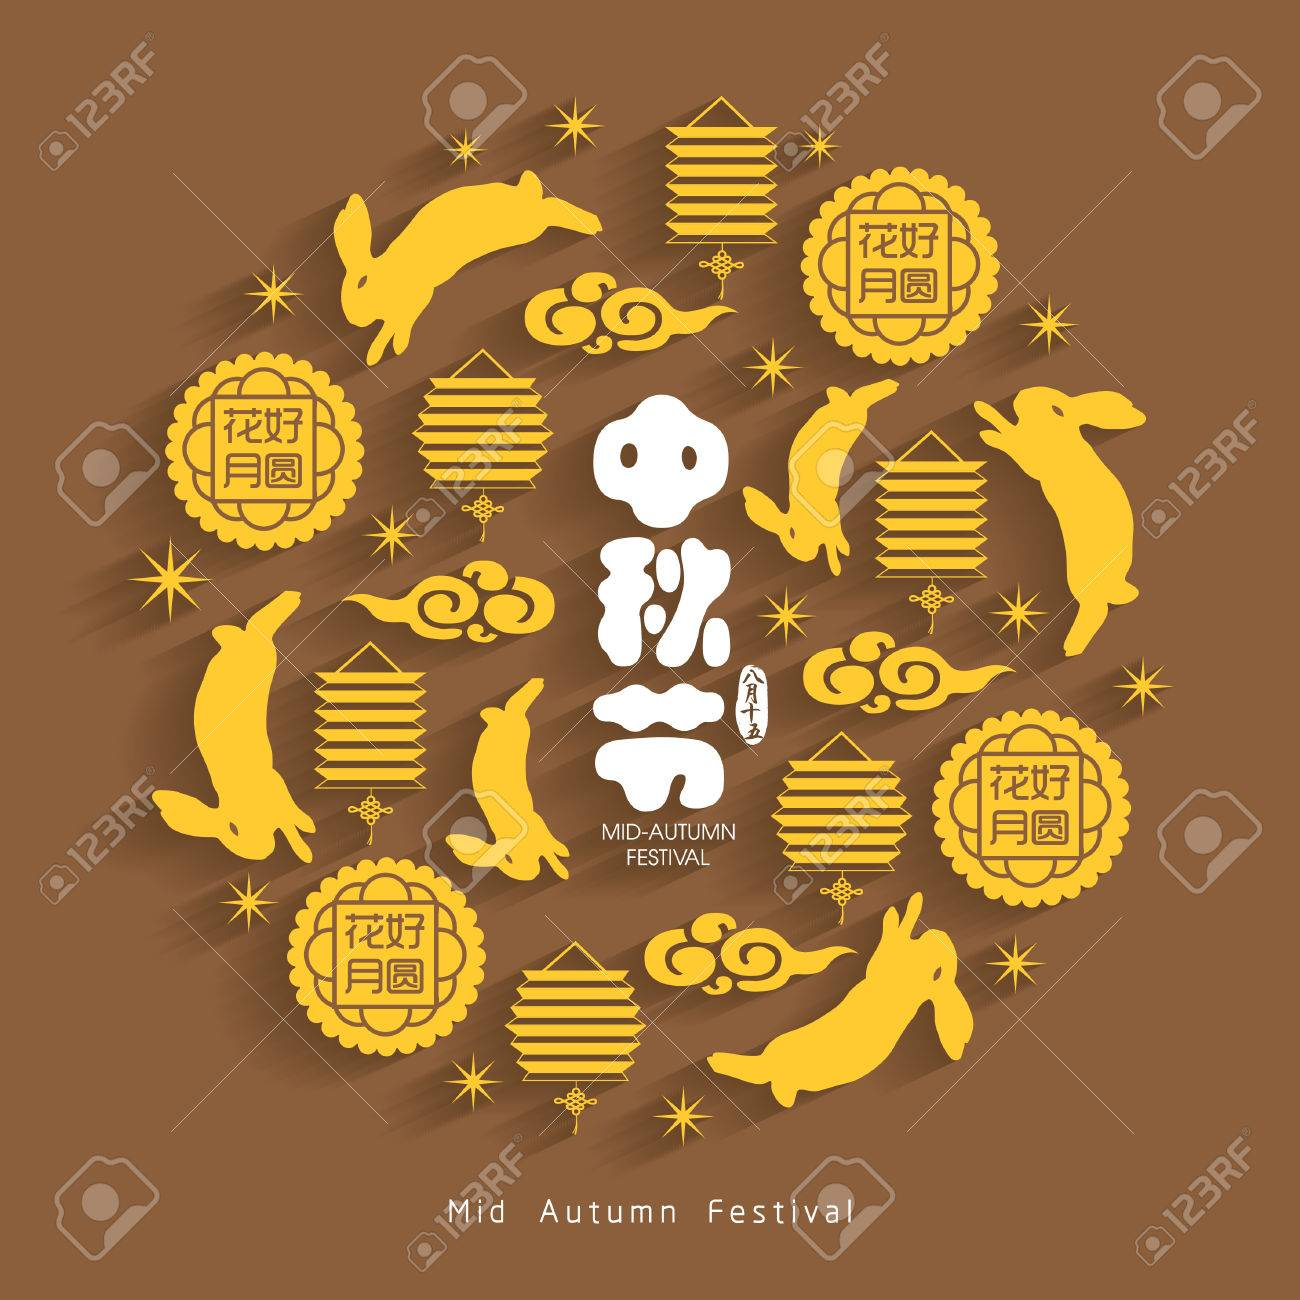 Mid-autumn festival illustration with bunny, moon cakes, lantern and cloud element - 83435042